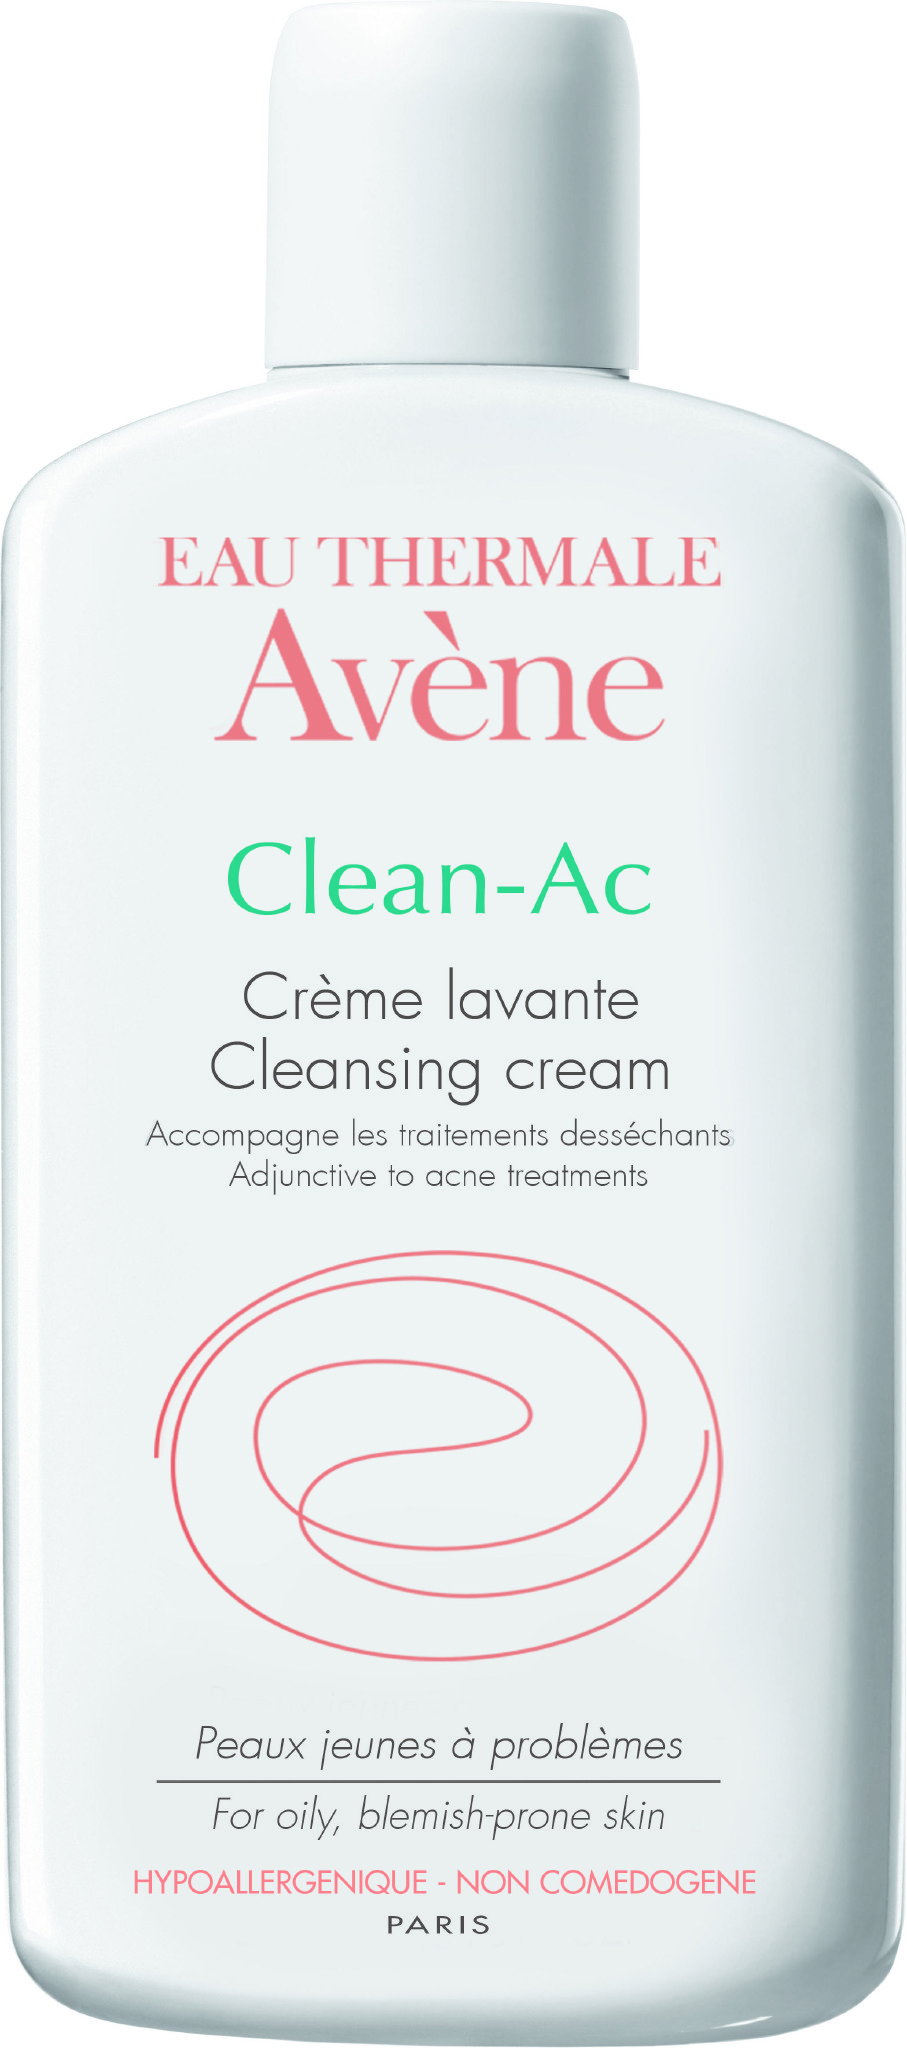 Clean-Ac Cleansing Cream by Avène